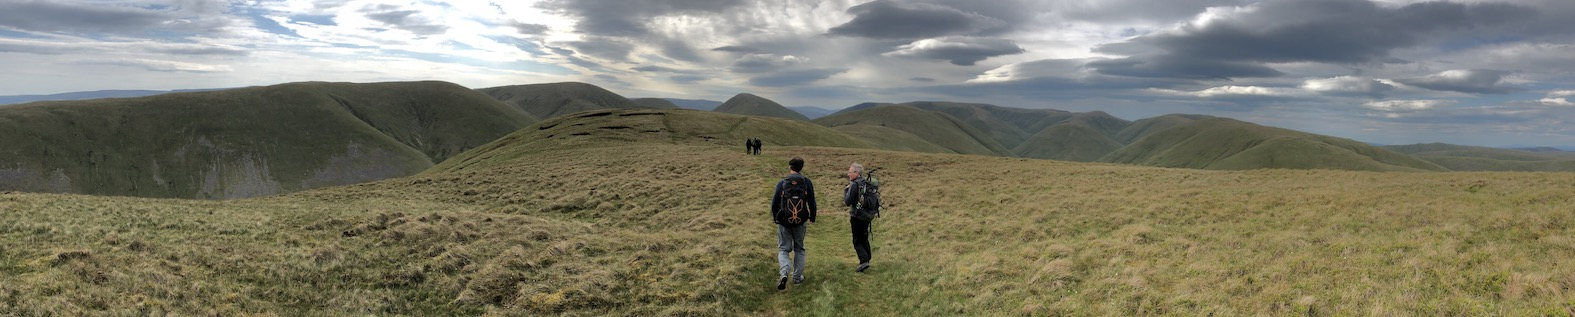 Yorkshire Dales - Howgill Fells and the three peaks feature image